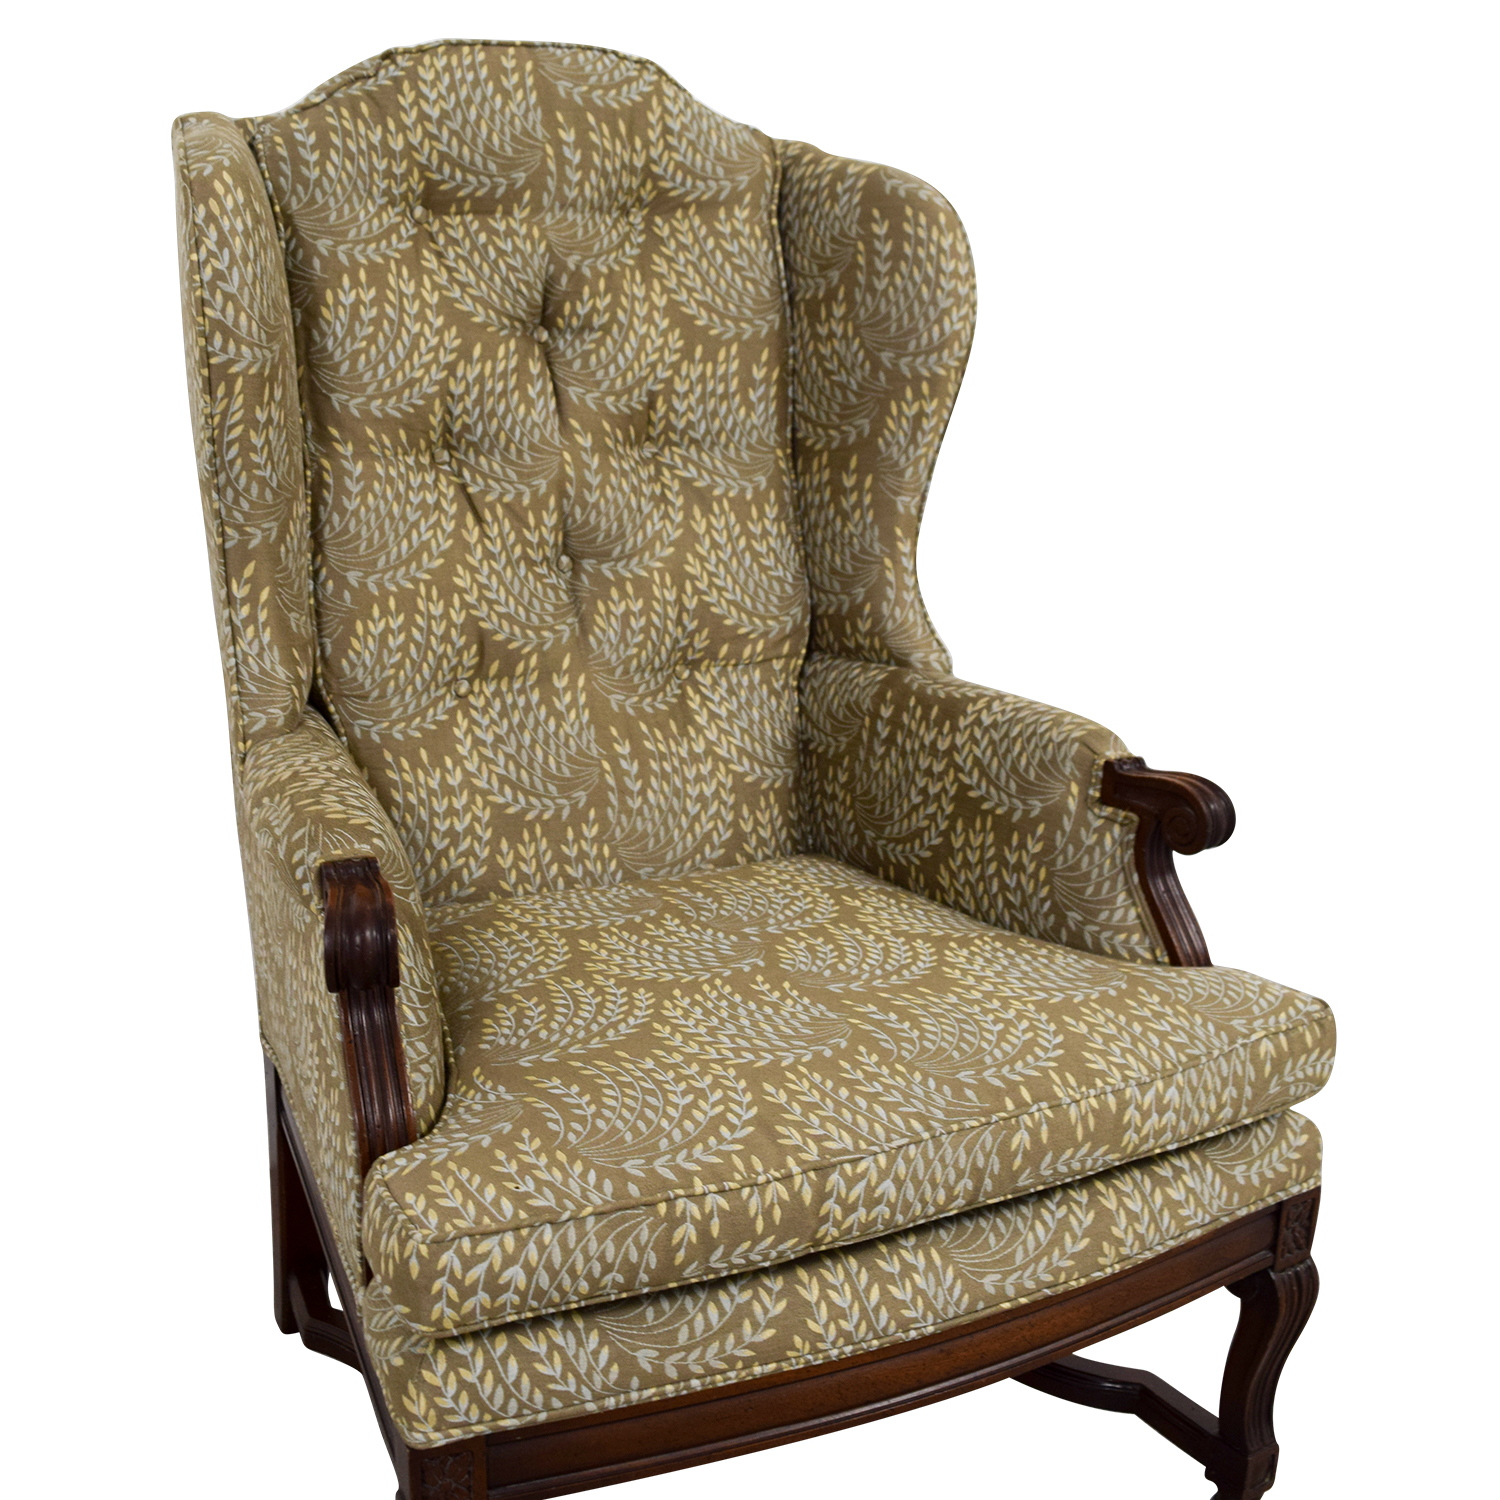 Vintage Accent Chair 77 Off Hickory Chair Hickory Olive Vintage Accent Chair Chairs